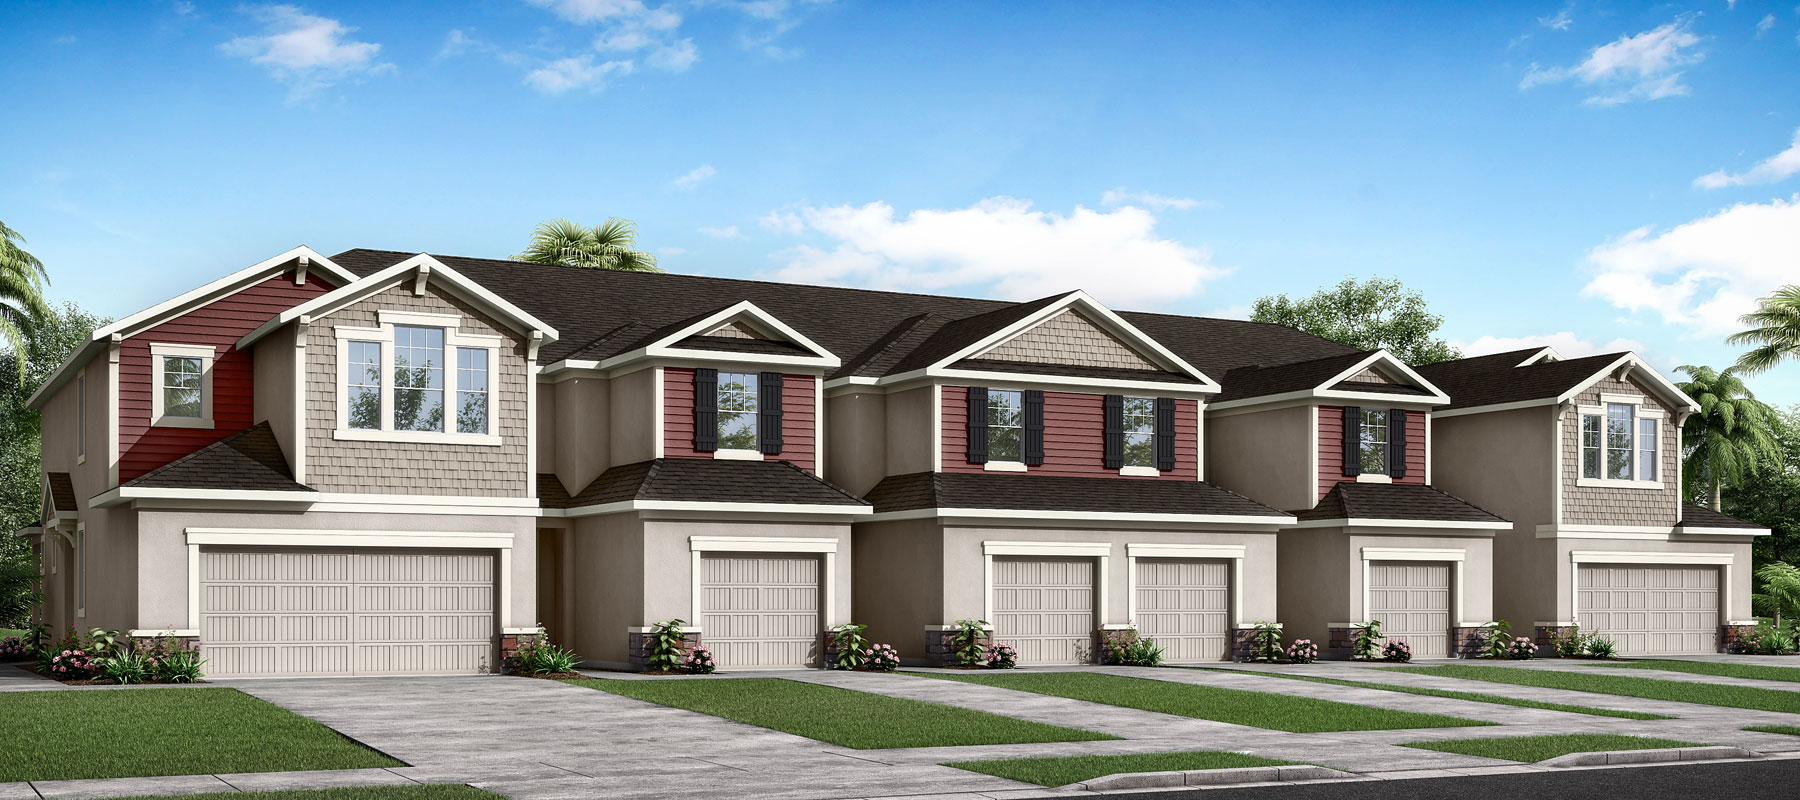 Seaside II End Plan TownHomes at Harmony at Lakewood Ranch in Lakewood Ranch Florida by Mattamy Homes